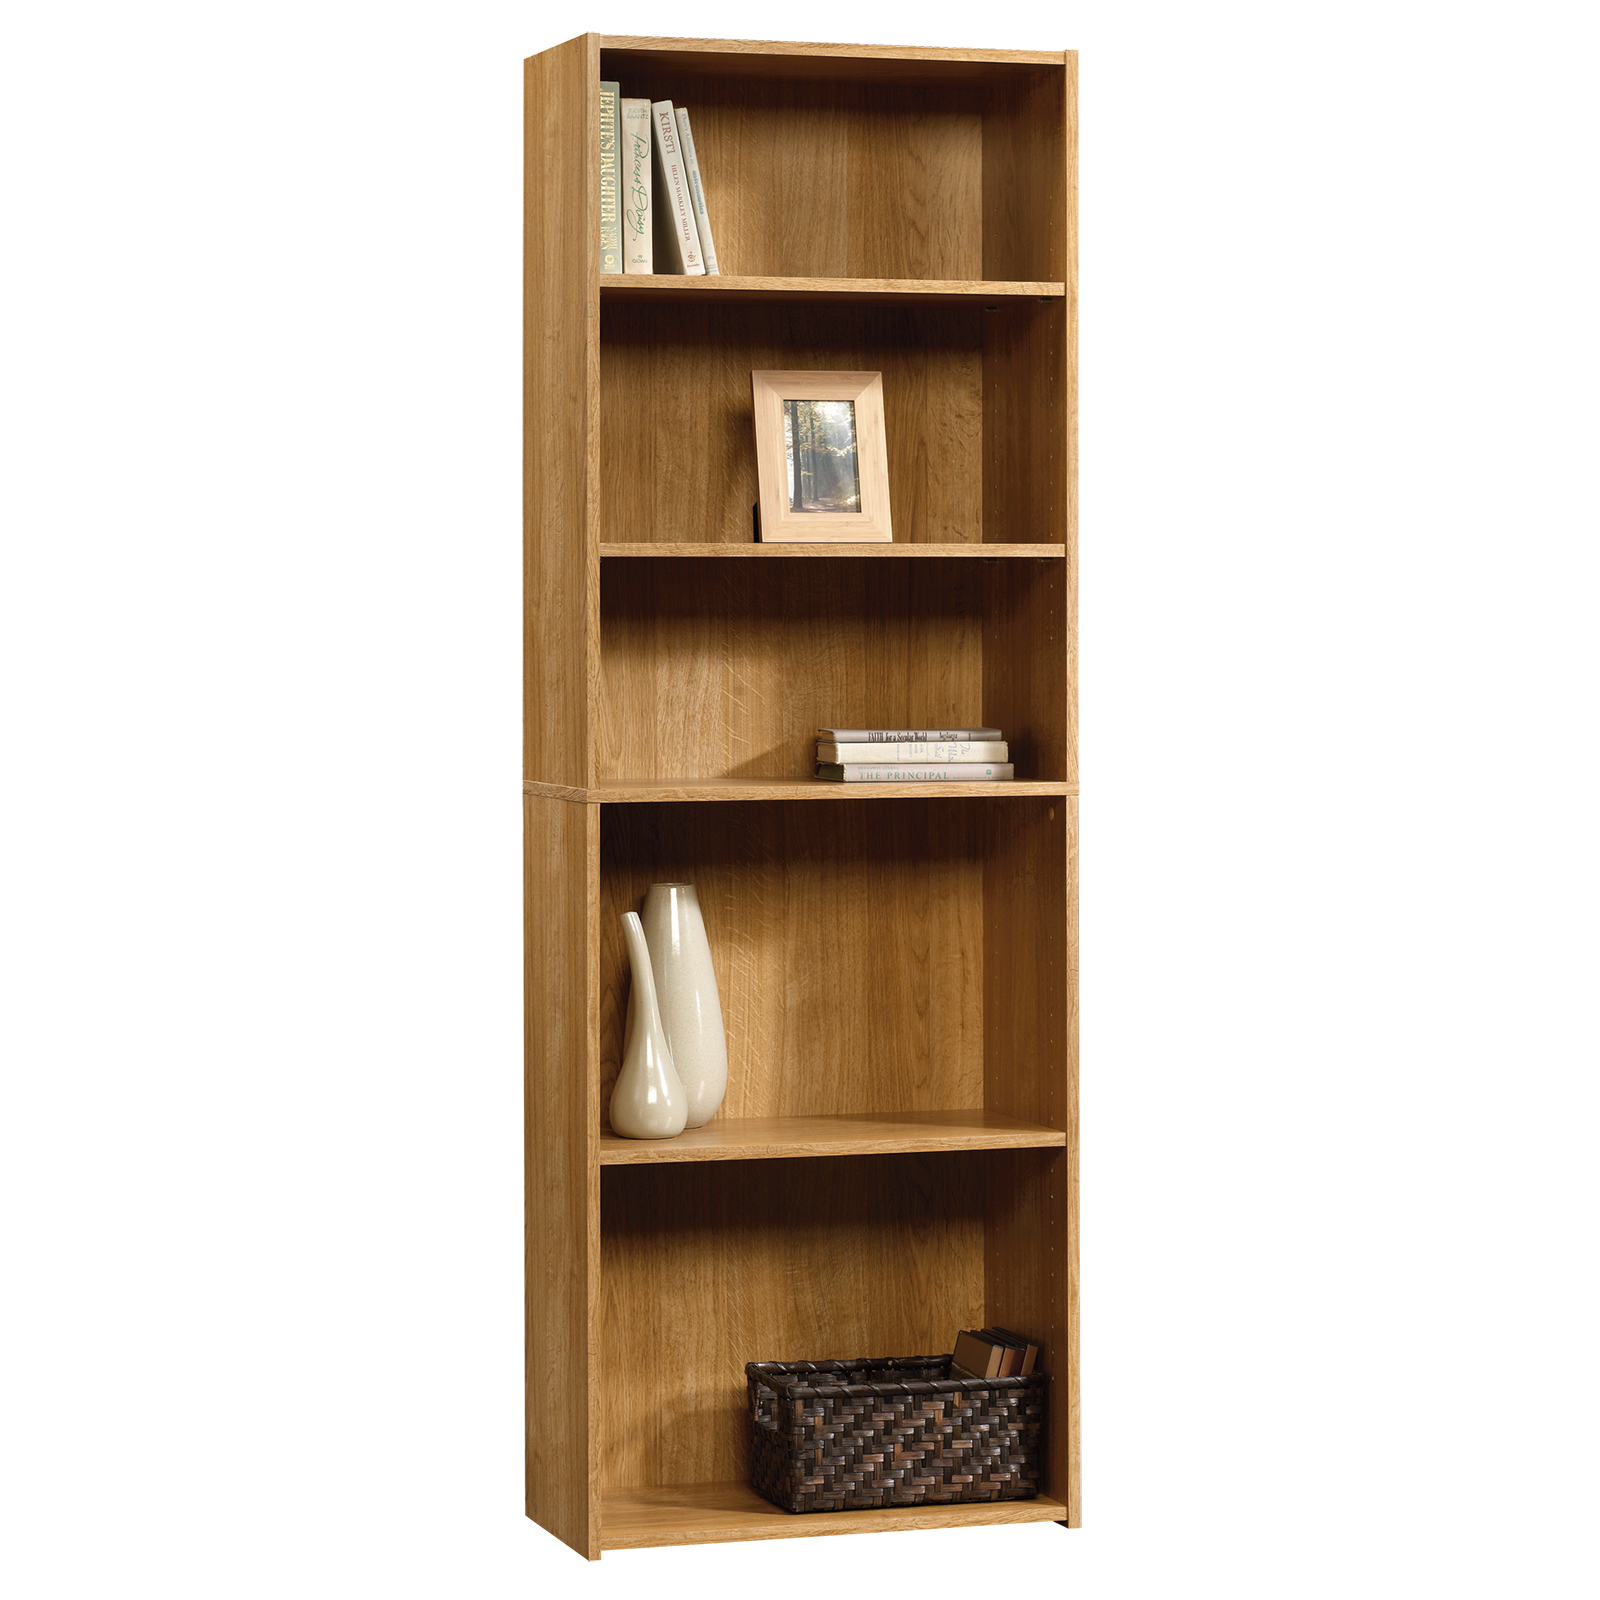 amazing sauder bookcases with rugs and laminate flooring plus window treatments for Living Room Ideas